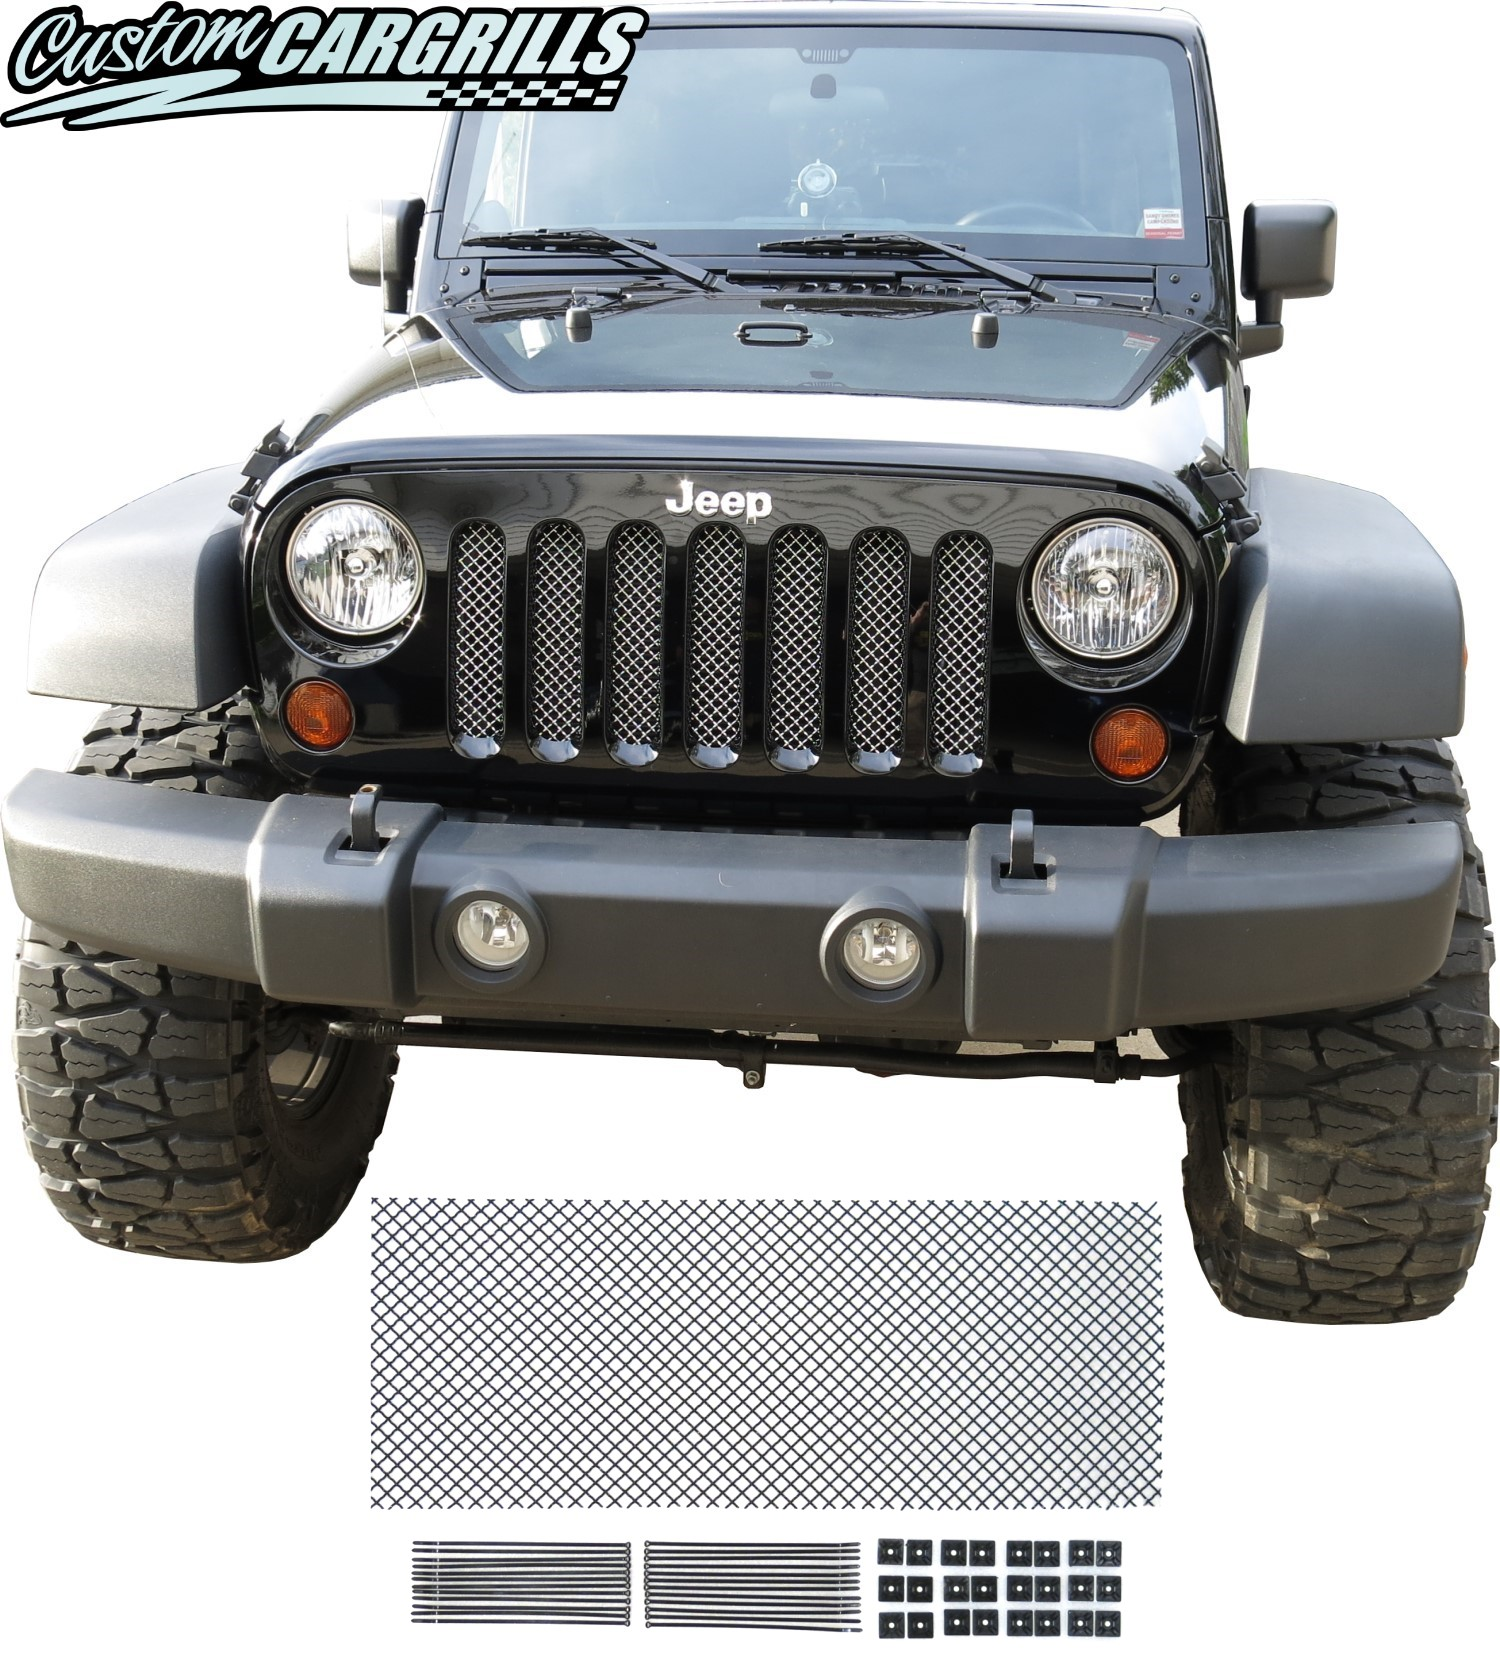 Mesh Grill Kit For 2007-17 Jeep Wrangler JK